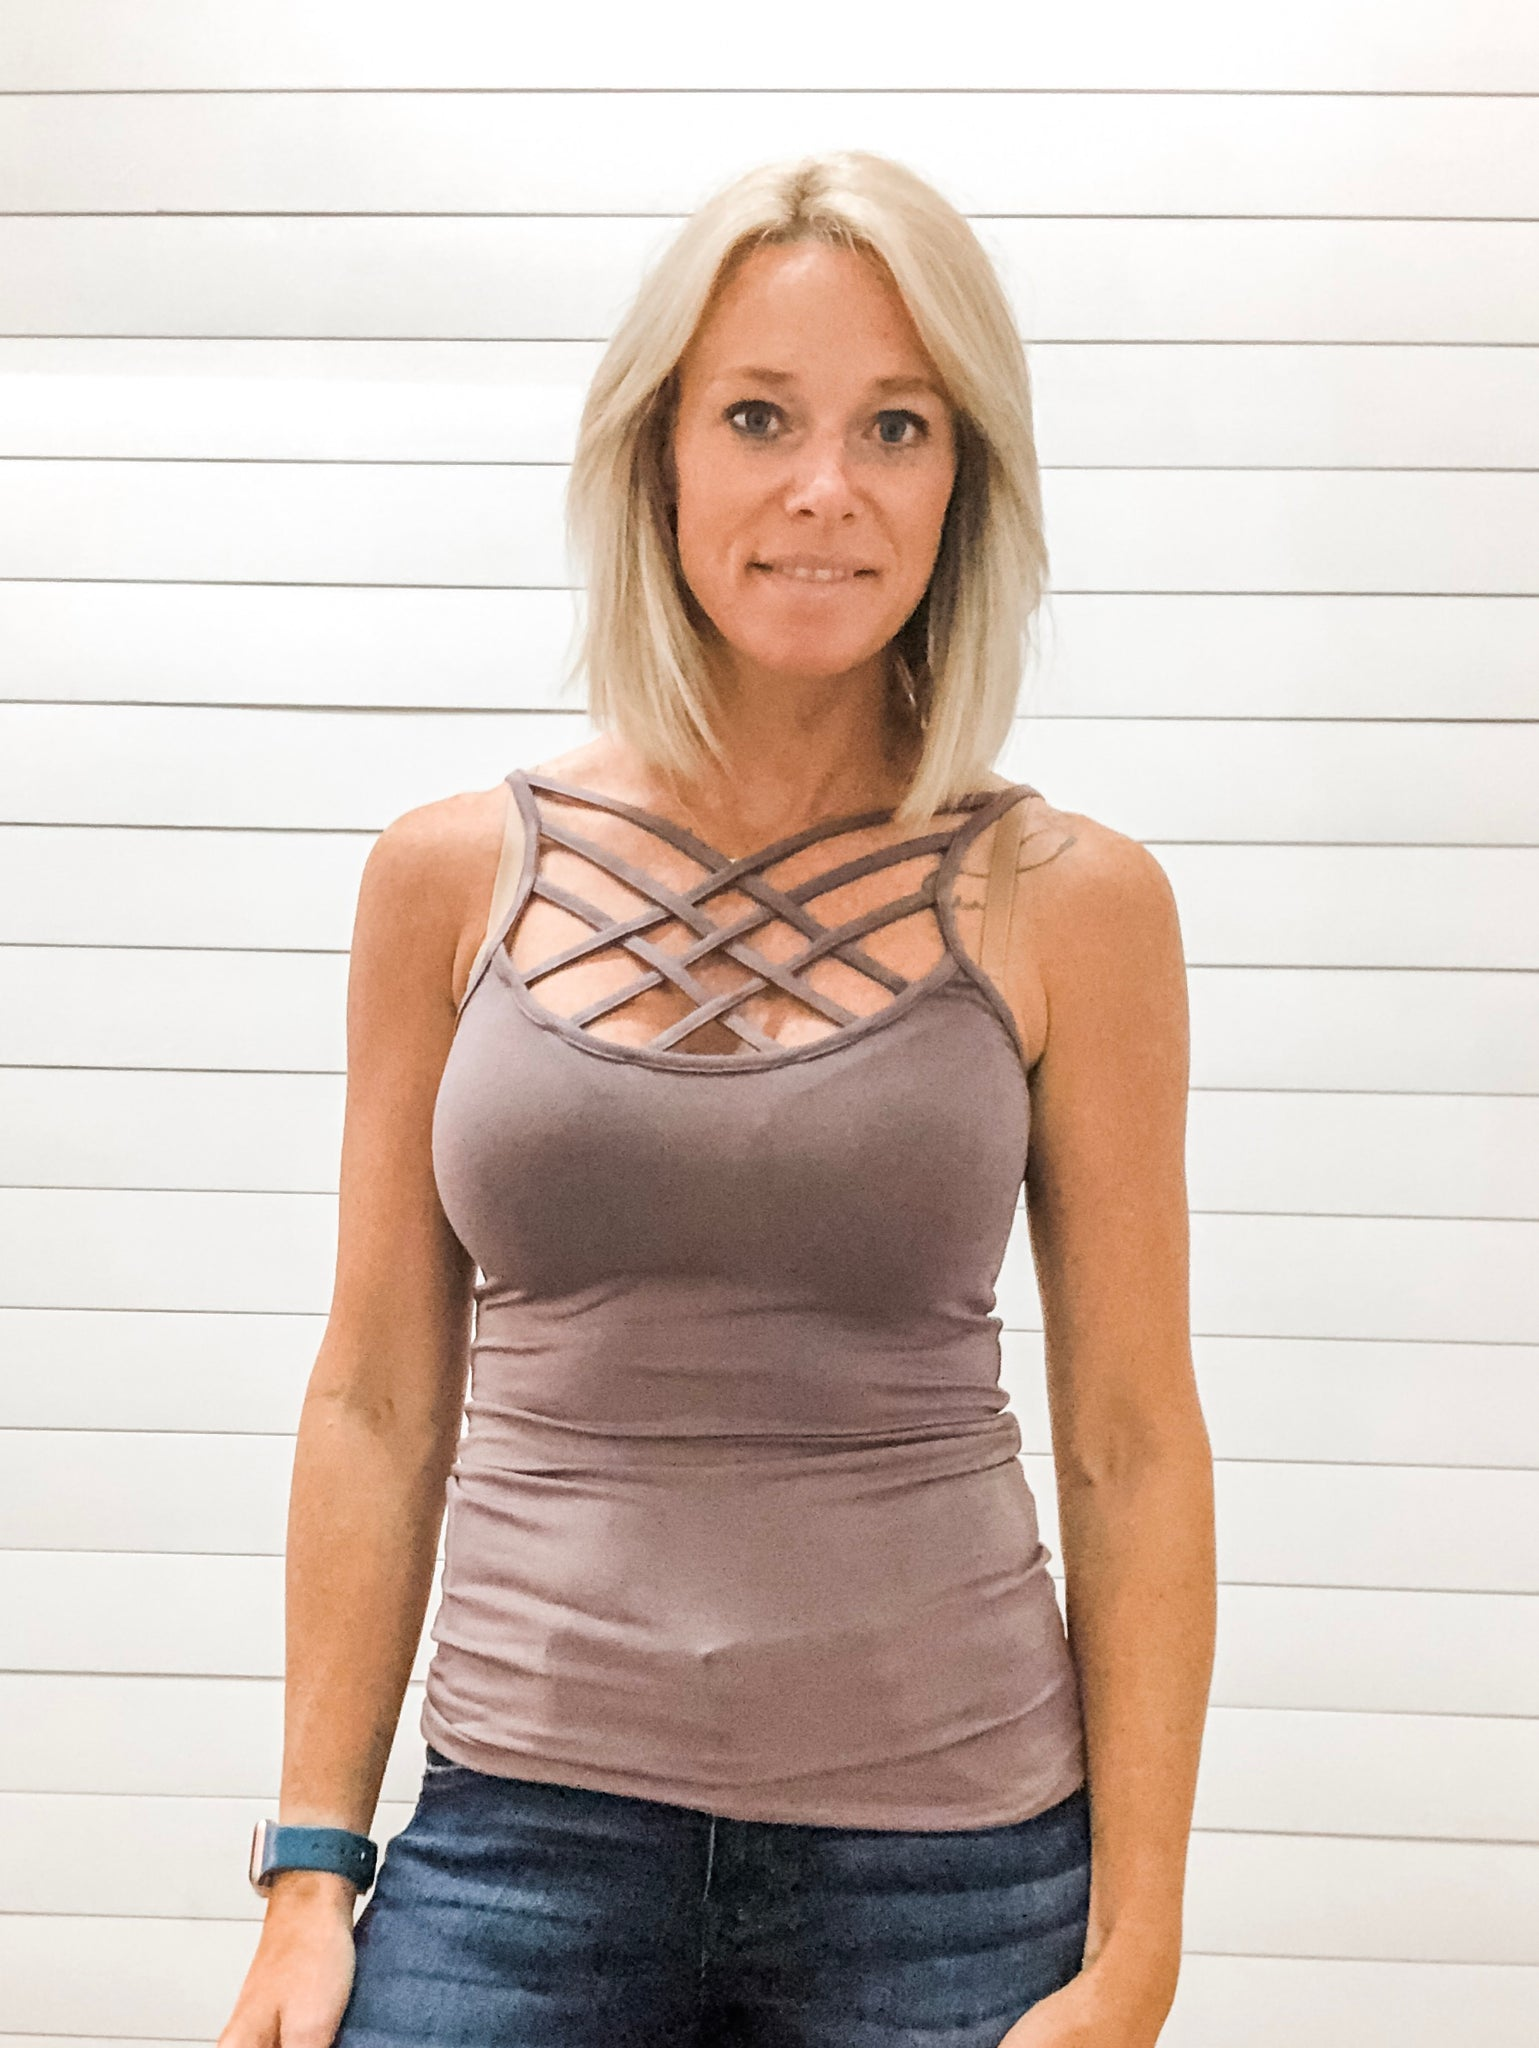 Reversible Woven Cage Strap Detailed Neckline Fitted Tank Top